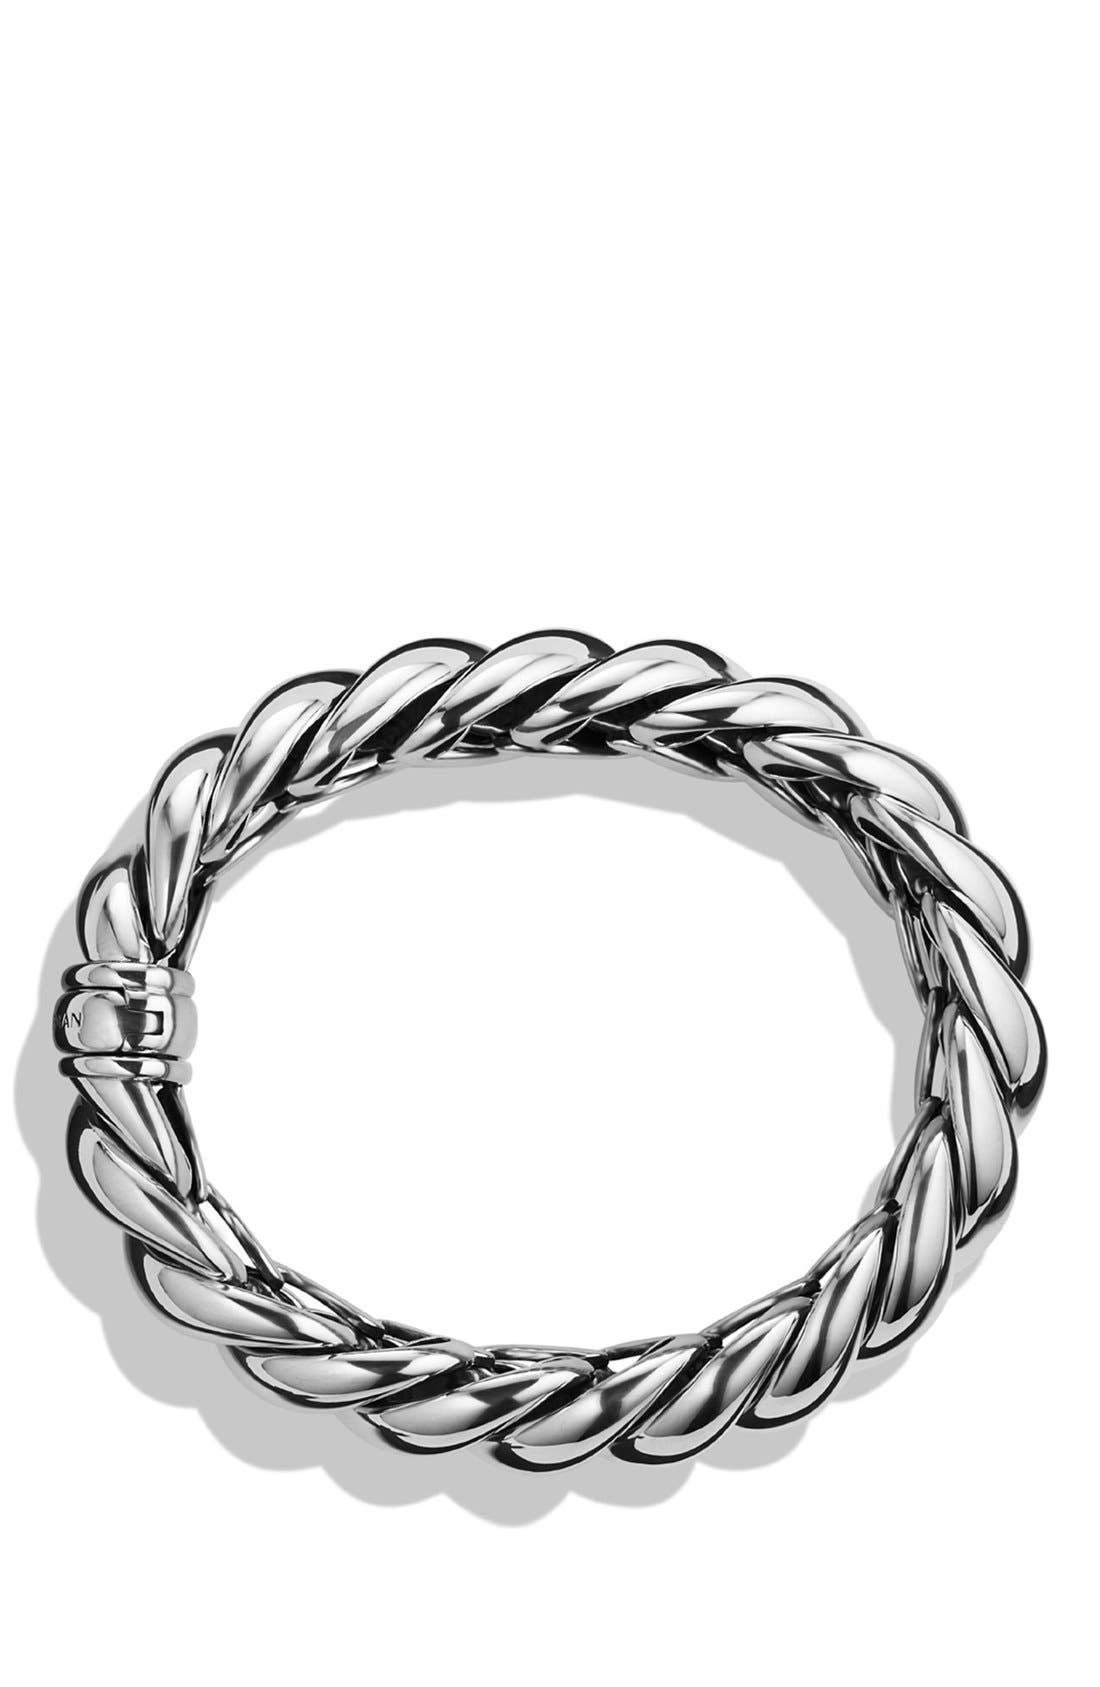 'Hampton Cable' Bracelet,                             Alternate thumbnail 2, color,                             040